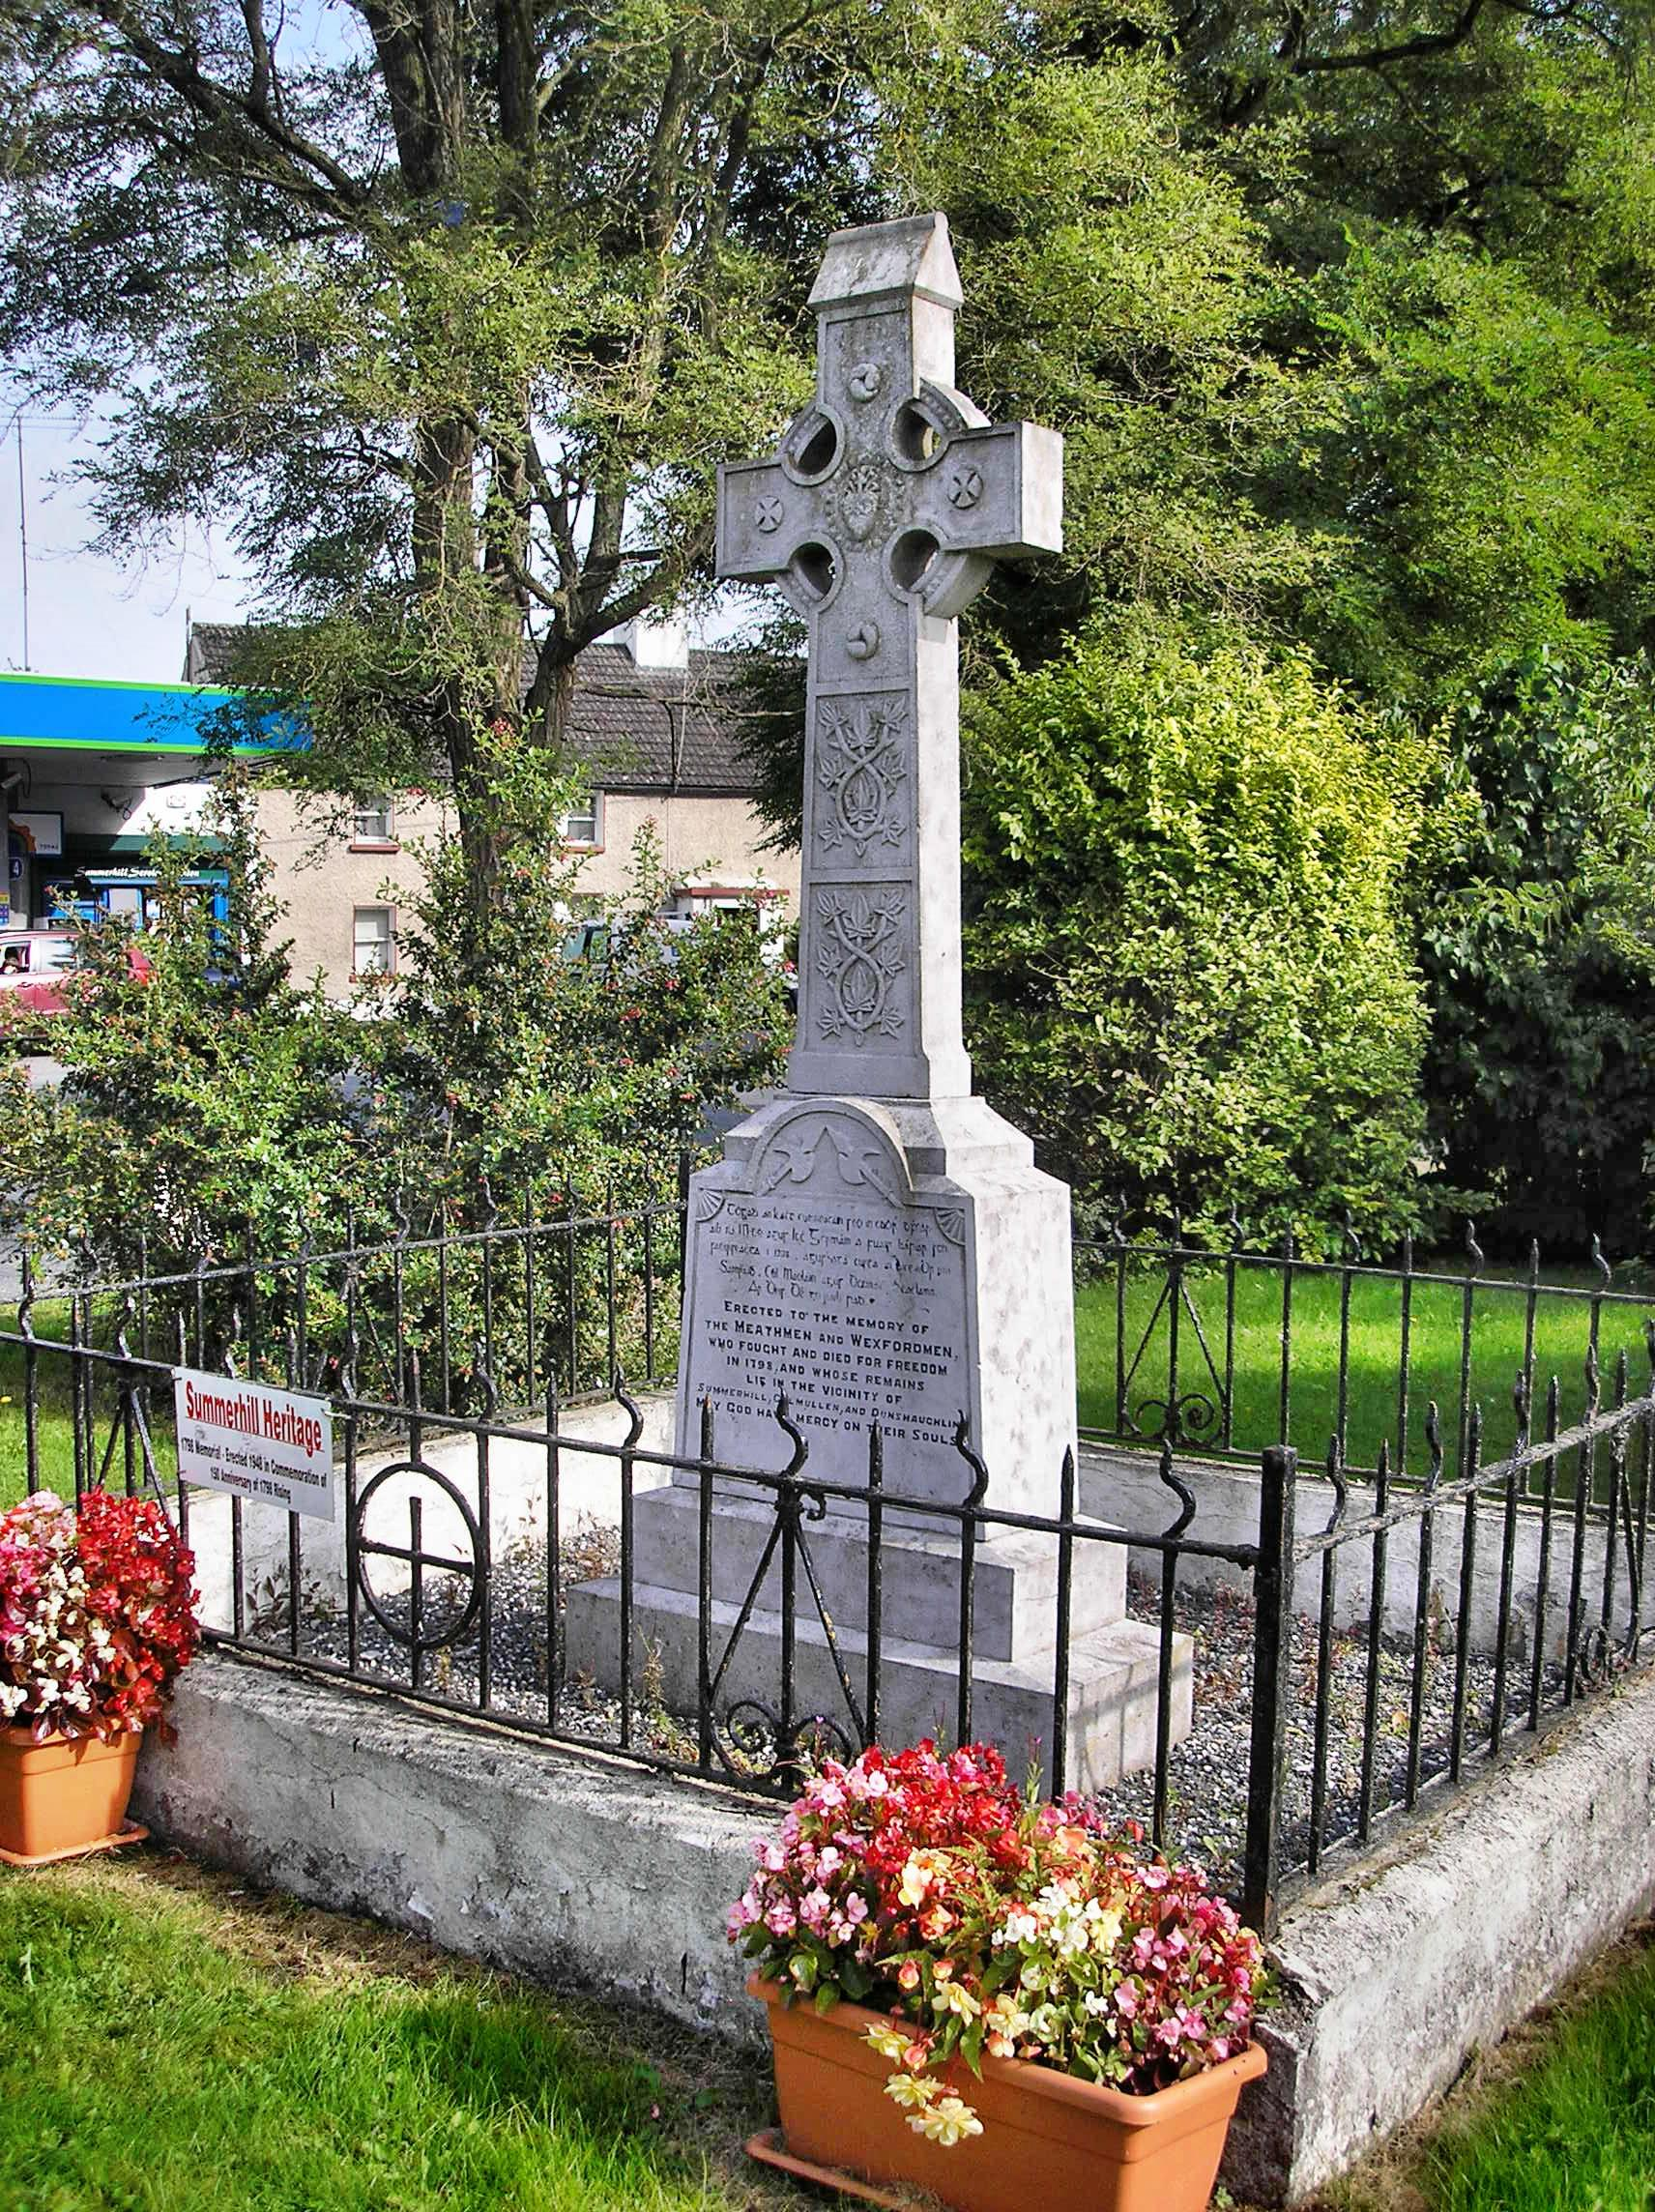 2Erected to the memory of the Meathmen and Wexfordmen, who fought and died for freedom in 1798, and whose remains lie in the vicinity of Summerhill, Culmullen and Dunshaughlin. May God have mercy on their souls""